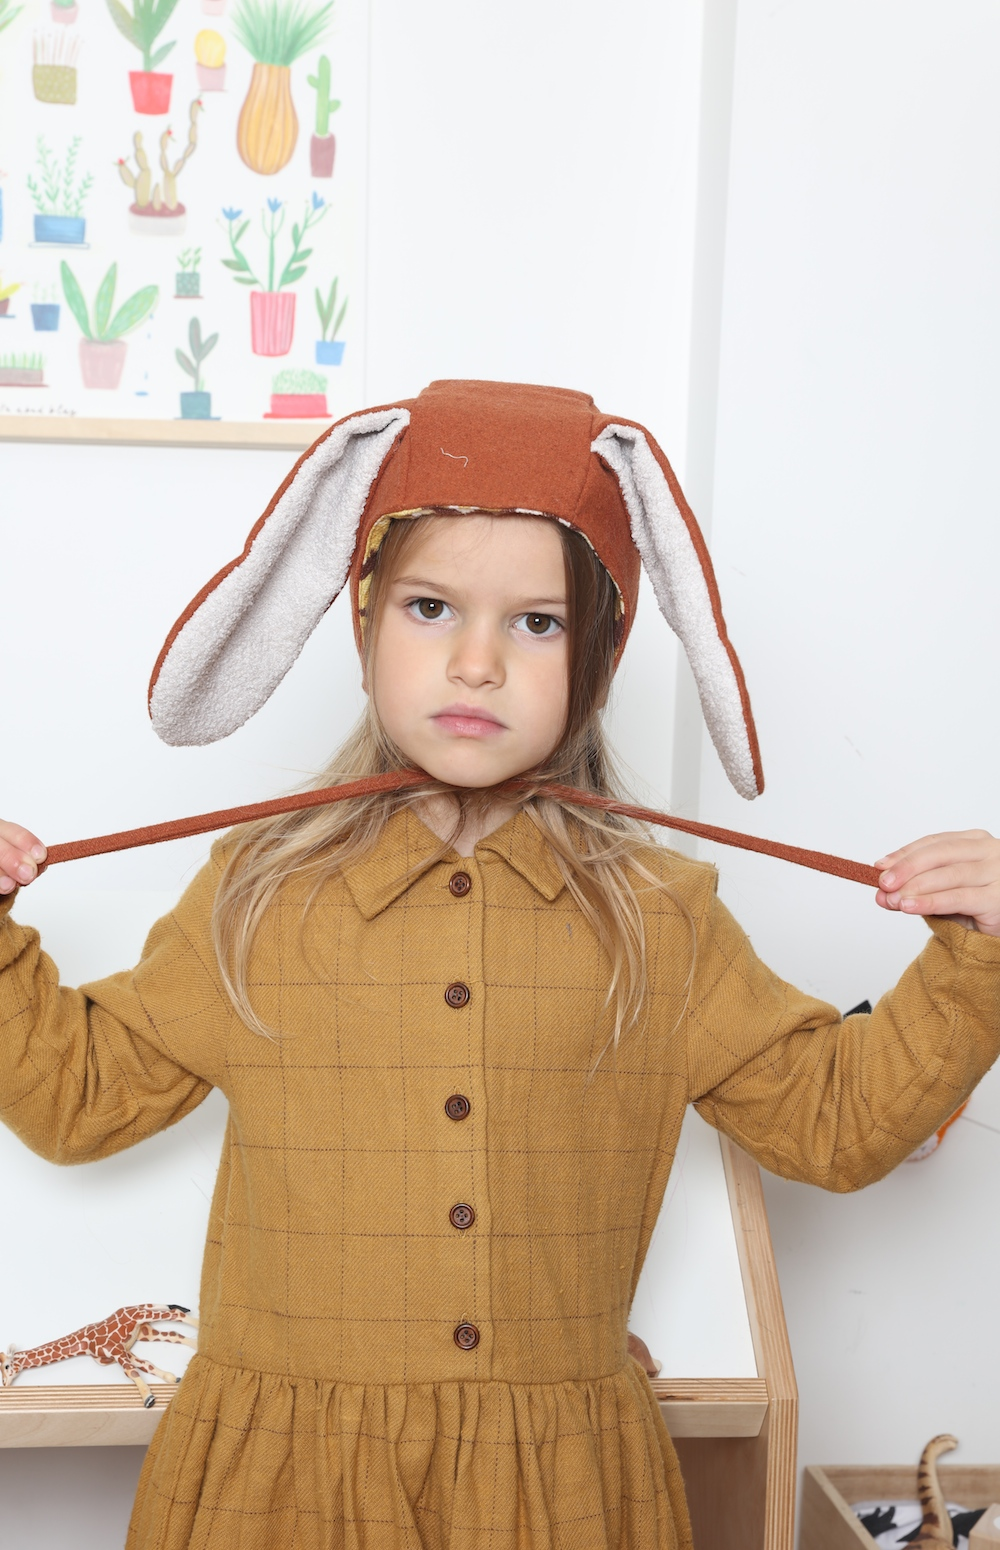 kia_ora_kit_childrens_bunny-rabbit_hat_bonnet_ginger